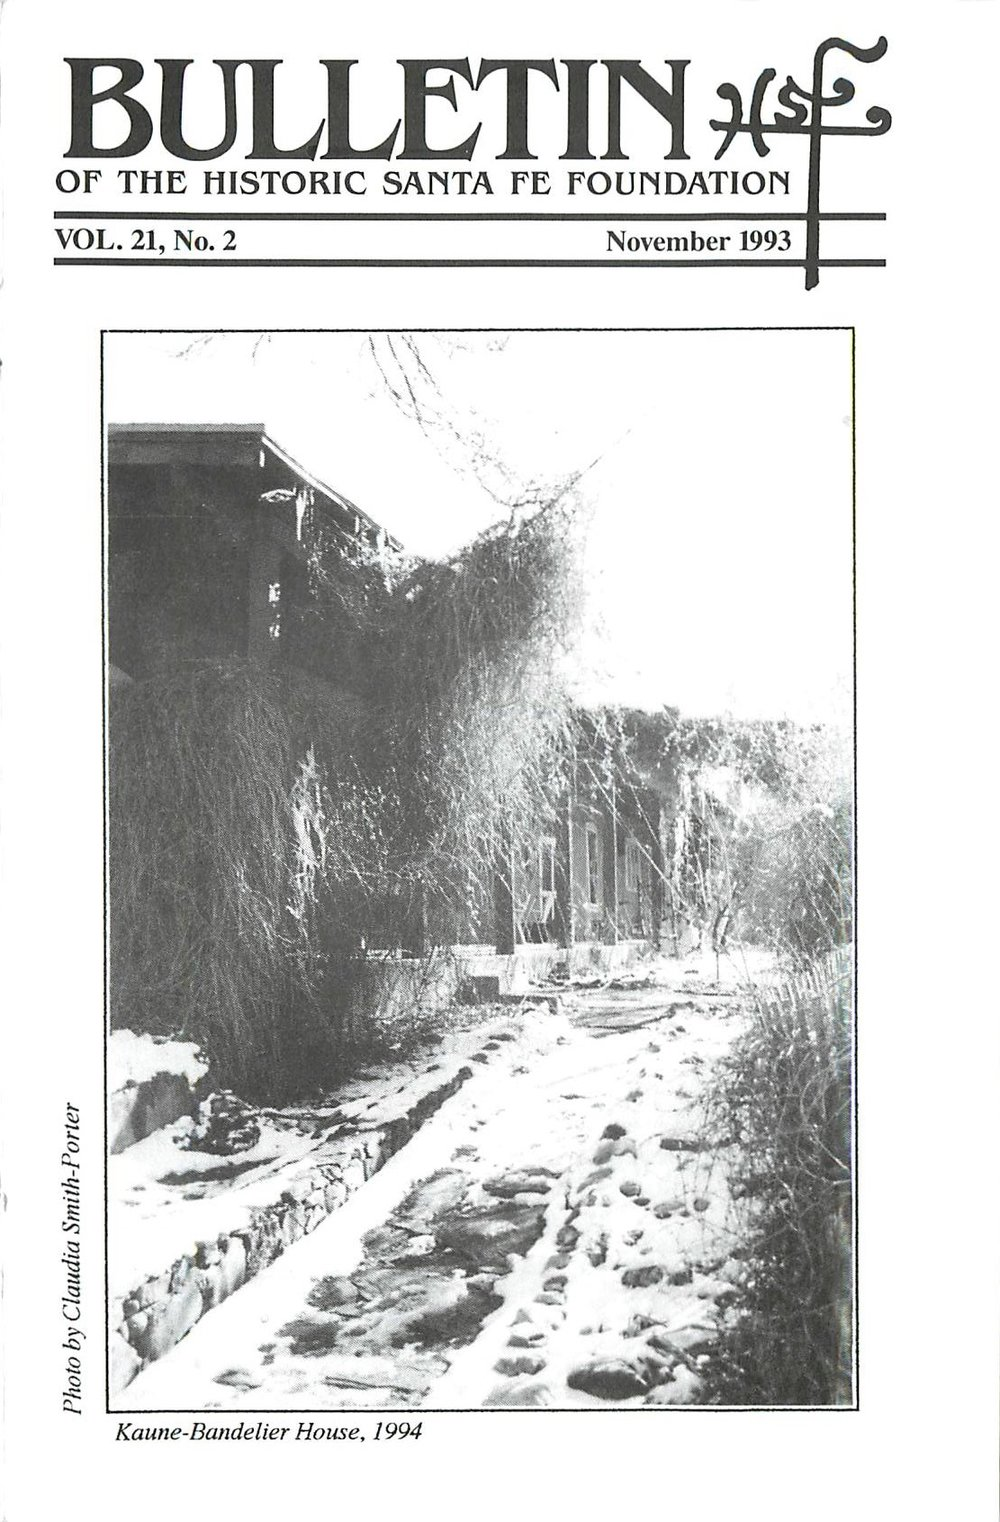 1993 HSFF Bulletin Vol.21 No.2 Cover